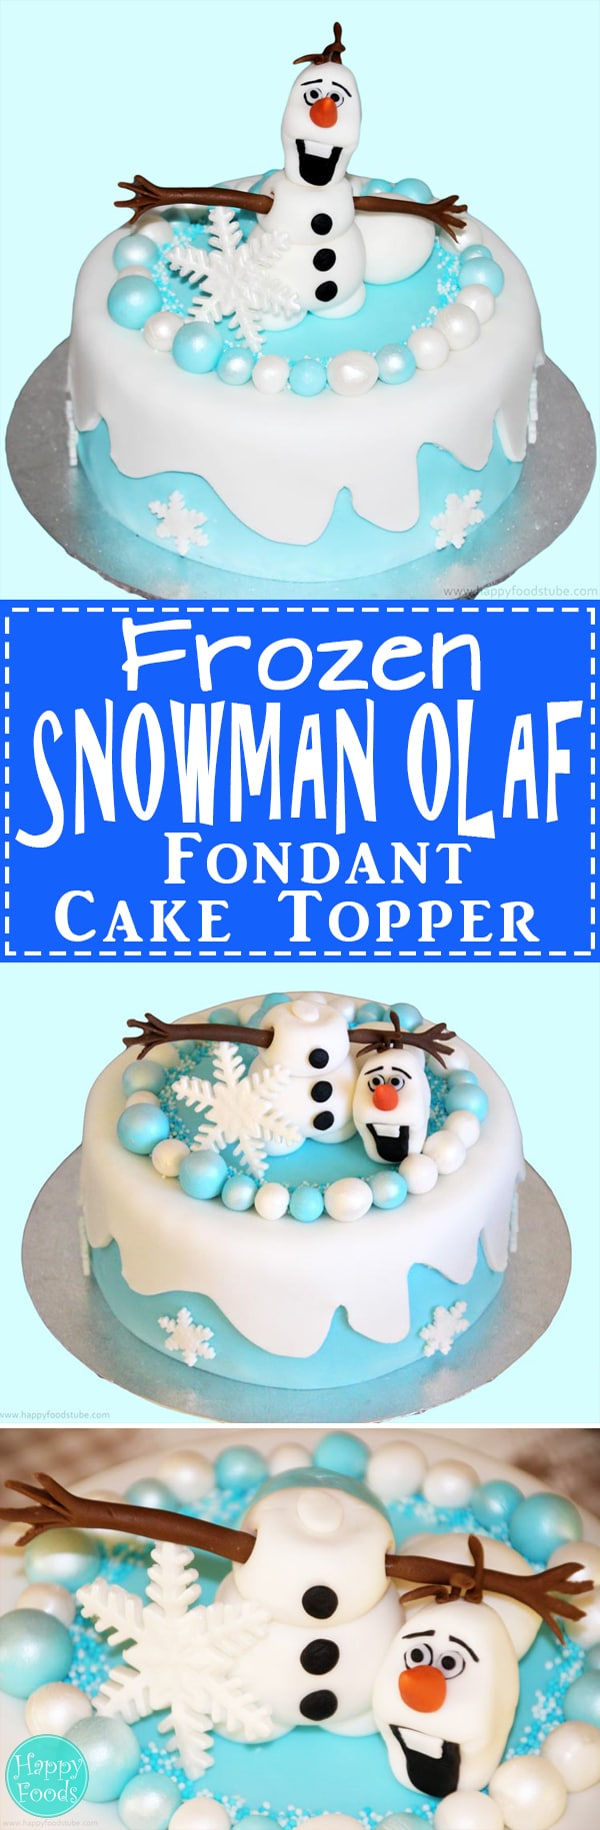 Frozen Snowman Olaf Fondant Icing Cake Topper - Cake decorating tutorial video. Learn how to make a Olaf from Disney cartoon! | happyfoodstube.com